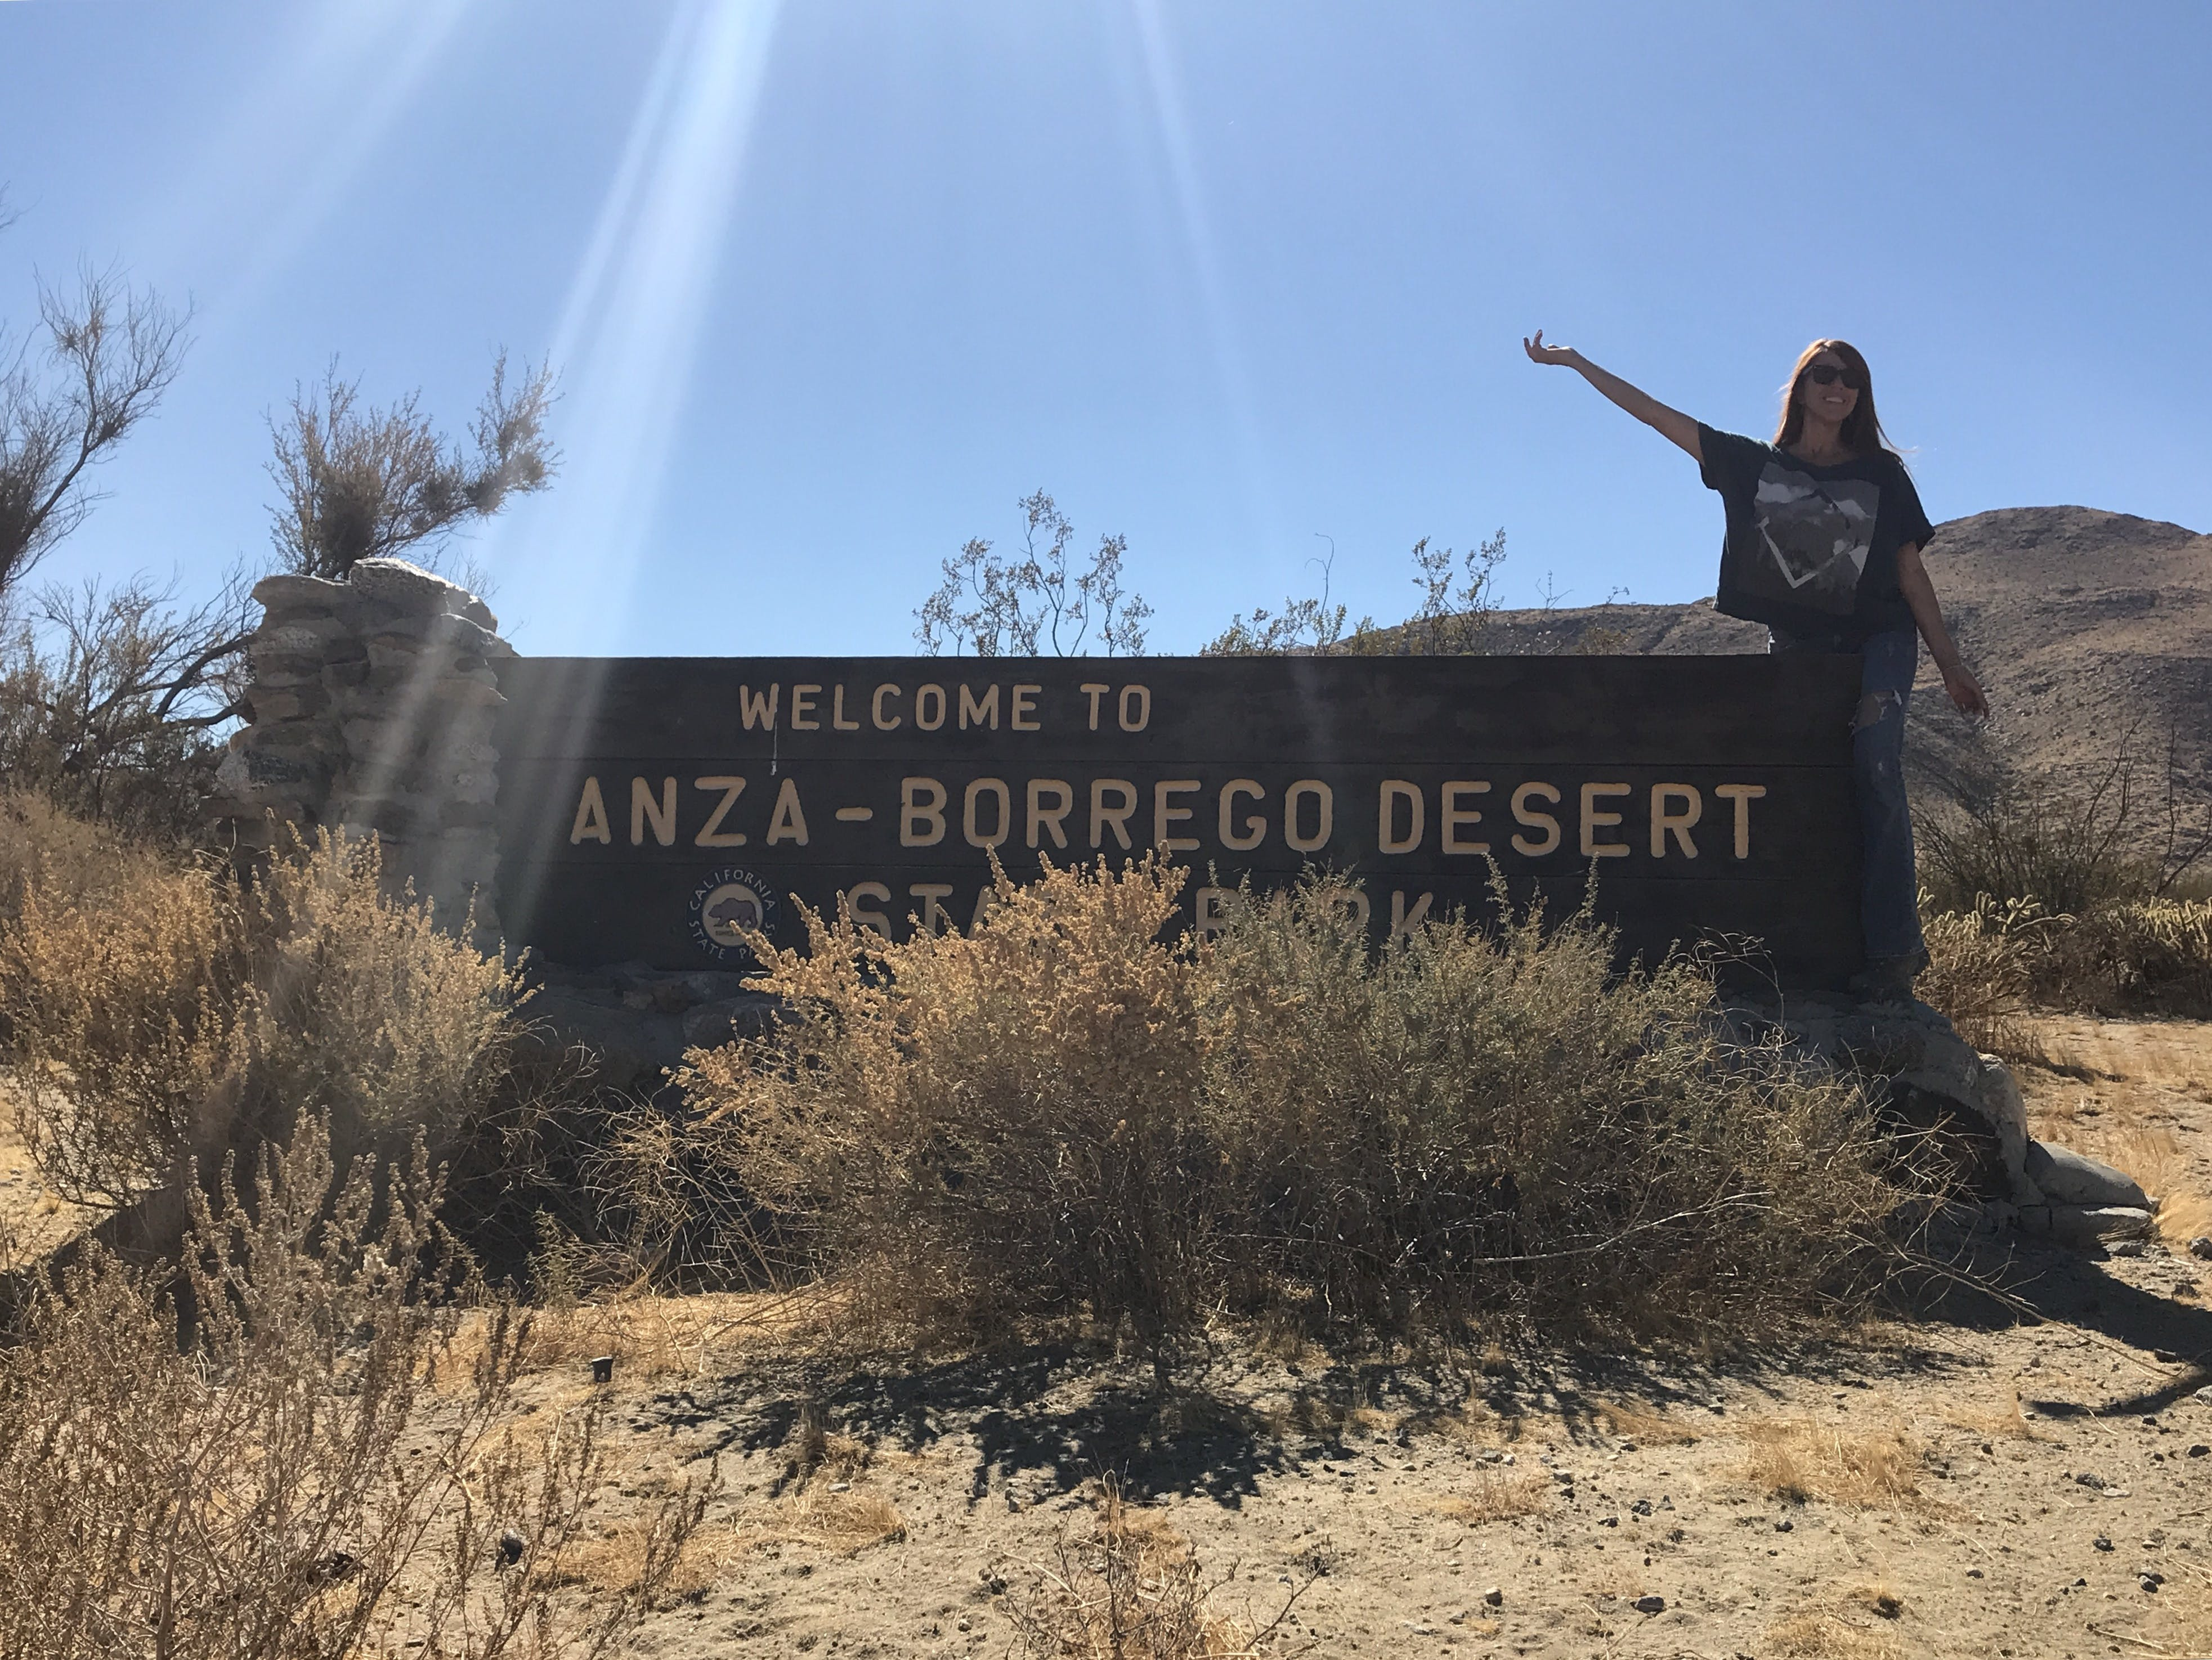 visitor poses beside the welcome sign to the woman poses for photo running away from a dinosaur sculpture in the anza-borrego desert